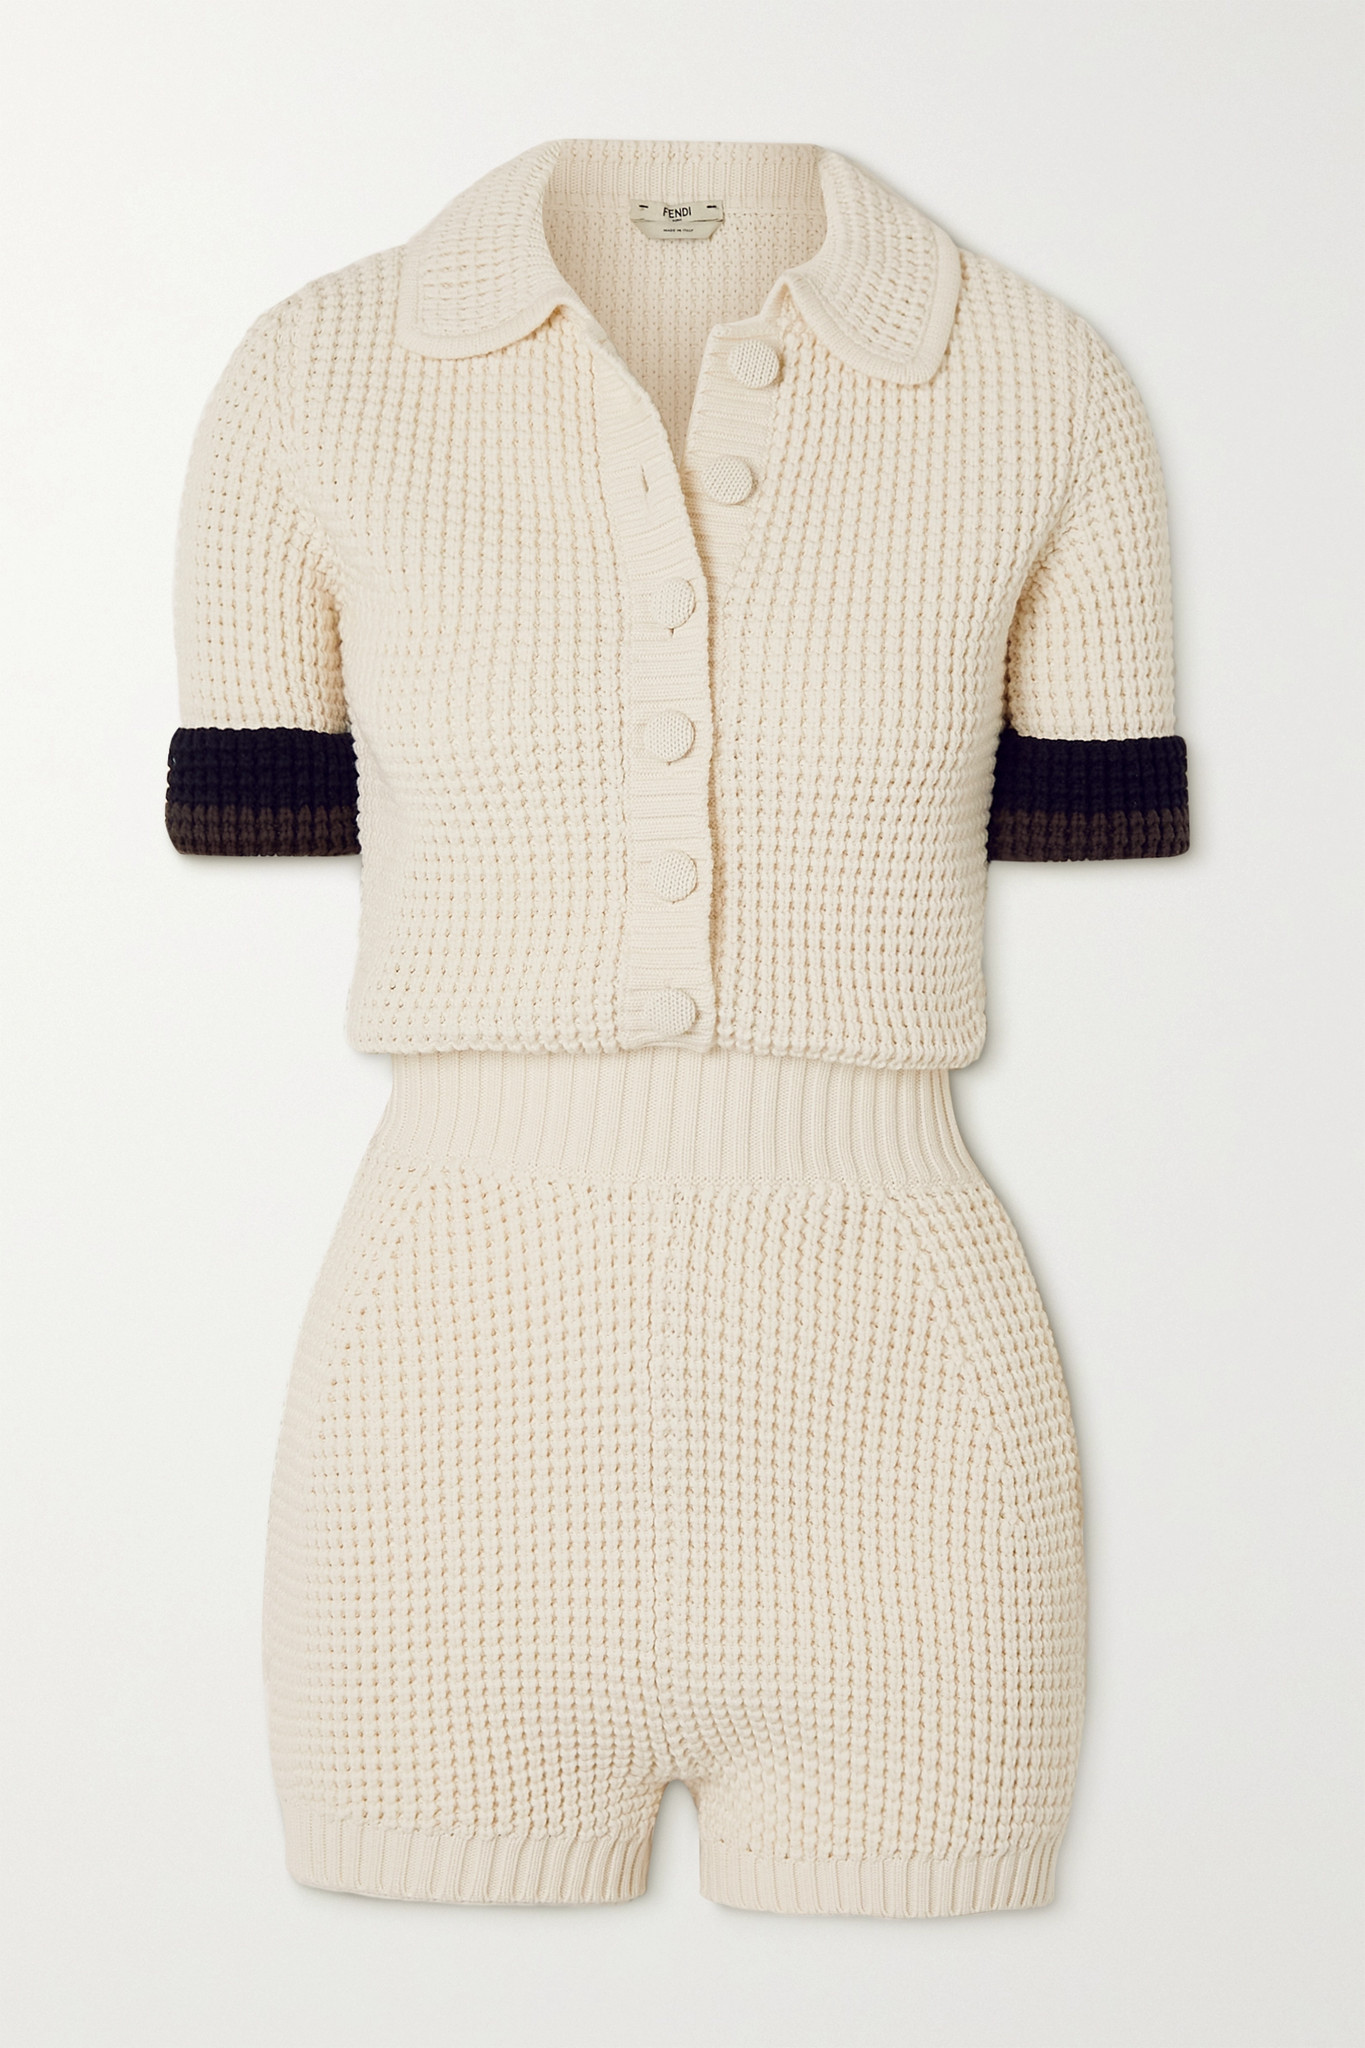 FENDI - Striped Knitted Playsuit - White - IT40